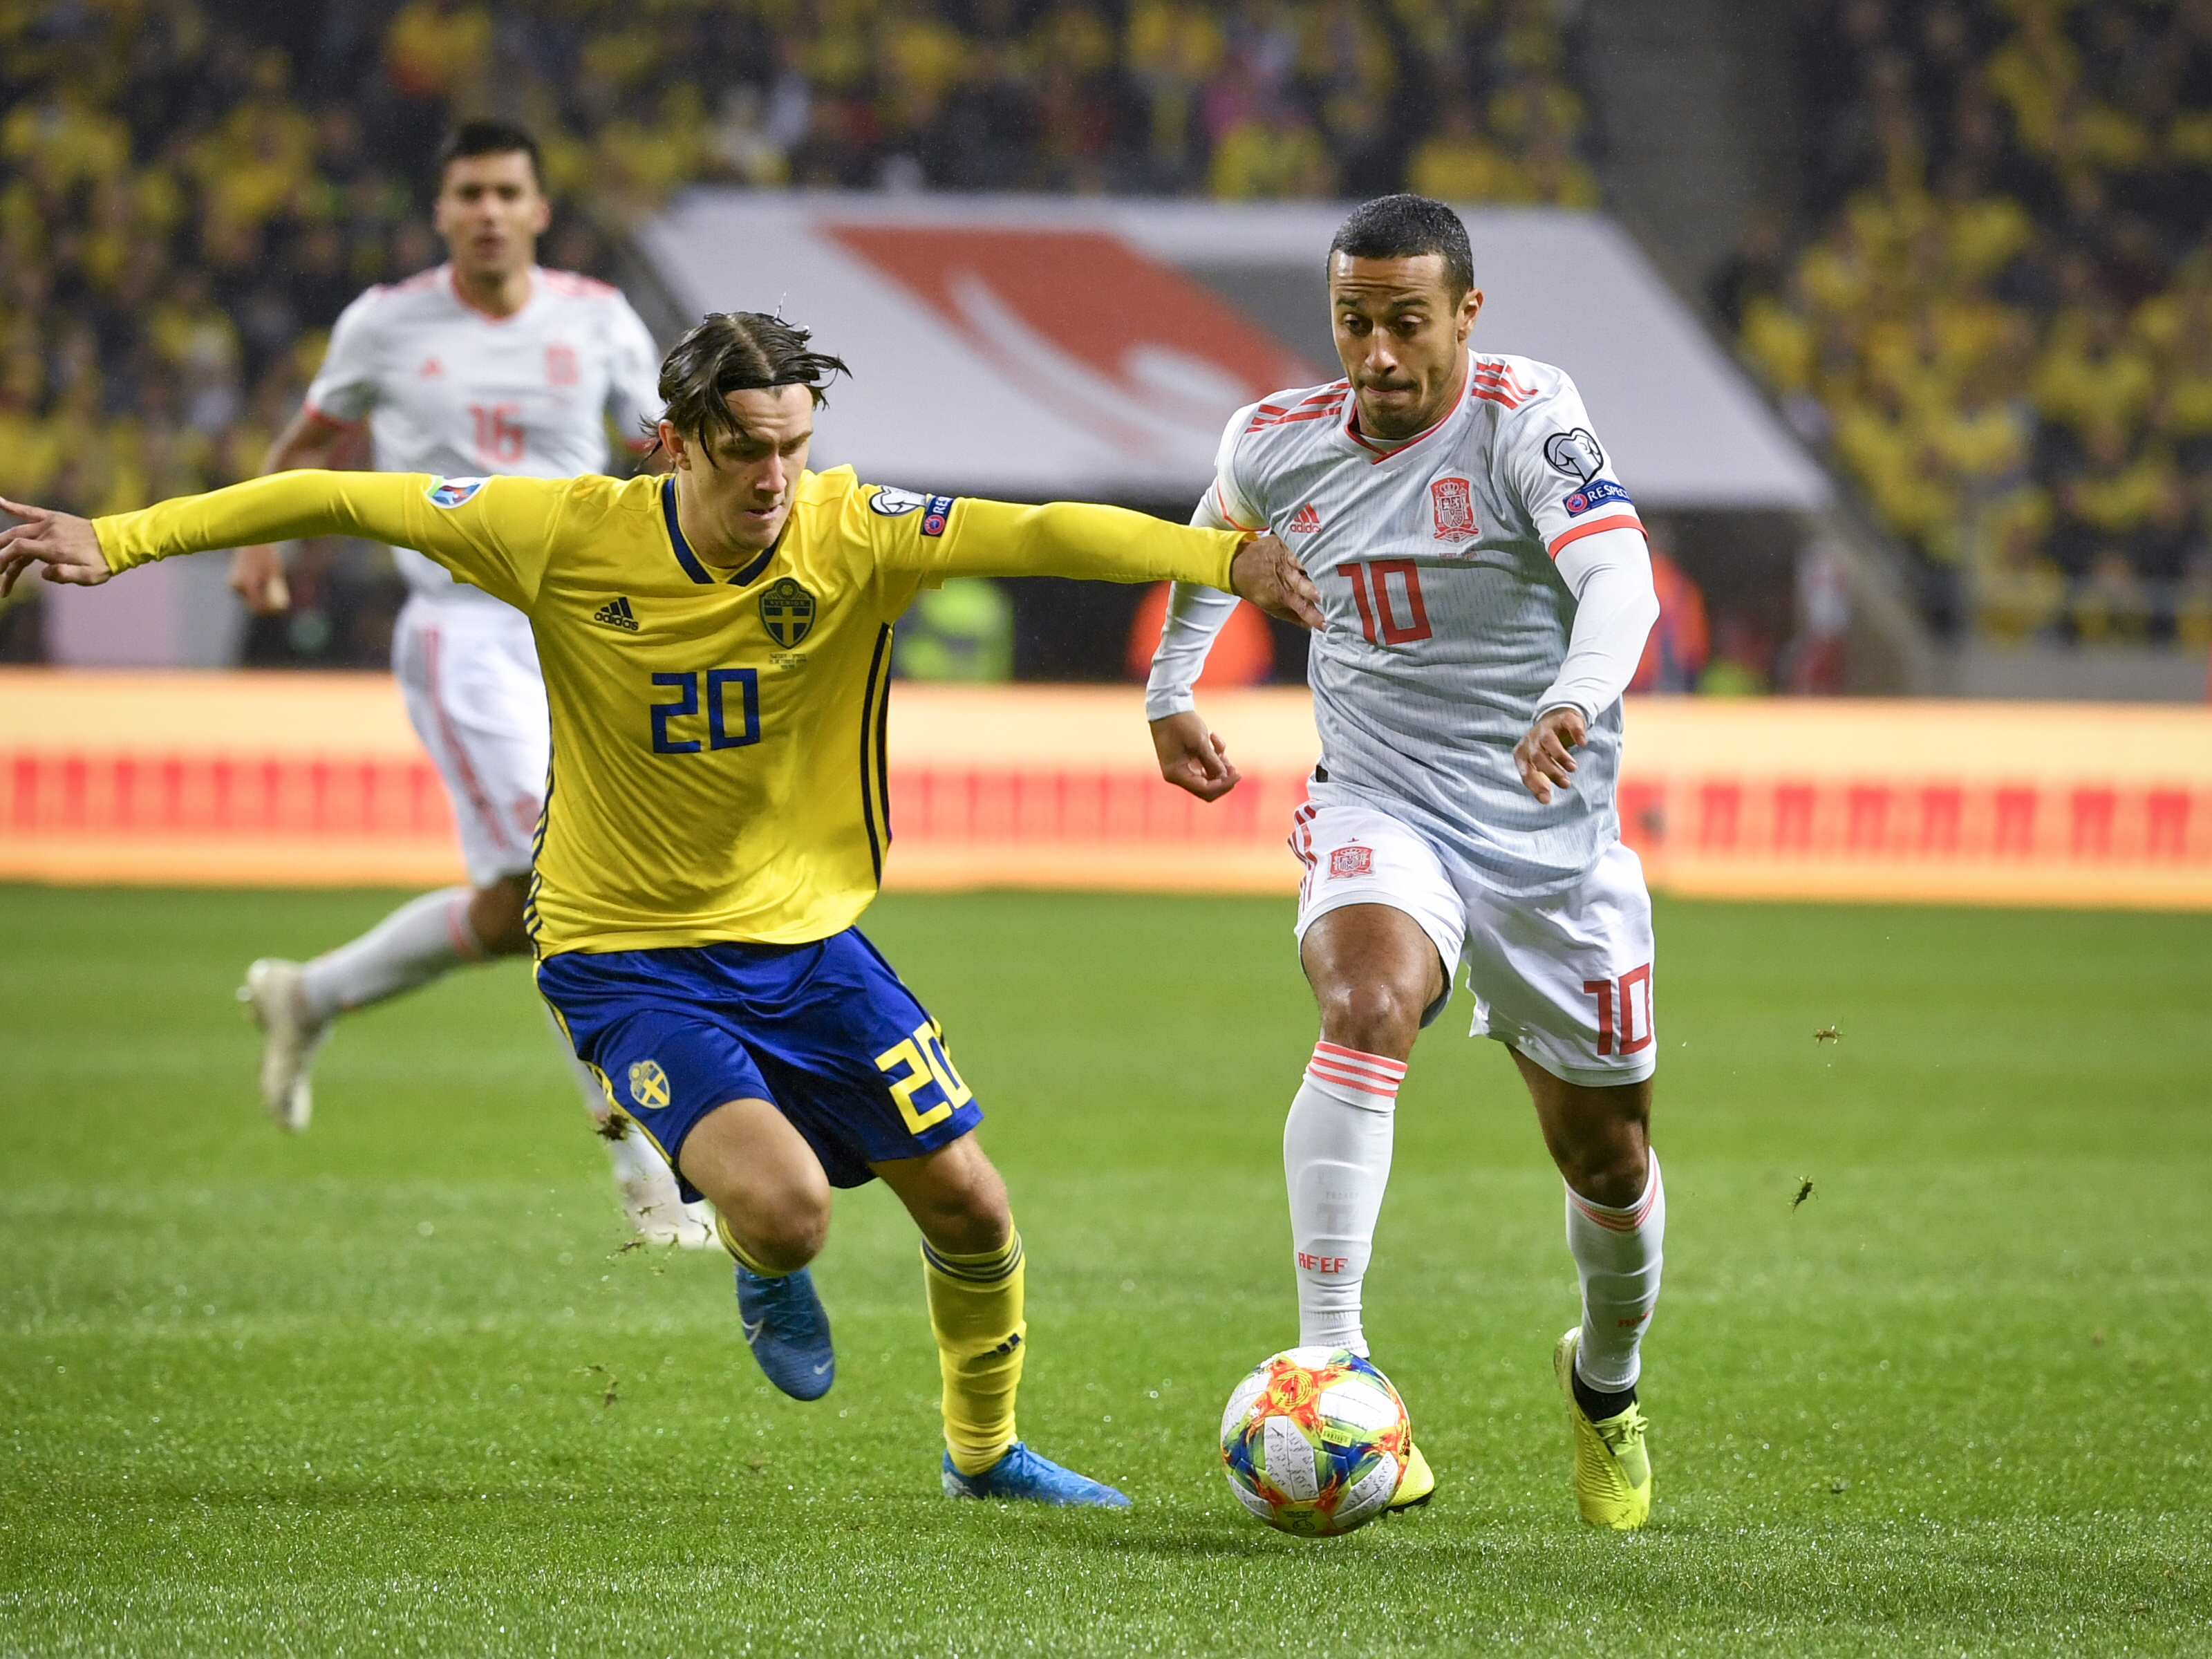 Halftime: Nothing to separate Sweden from Spain at the break